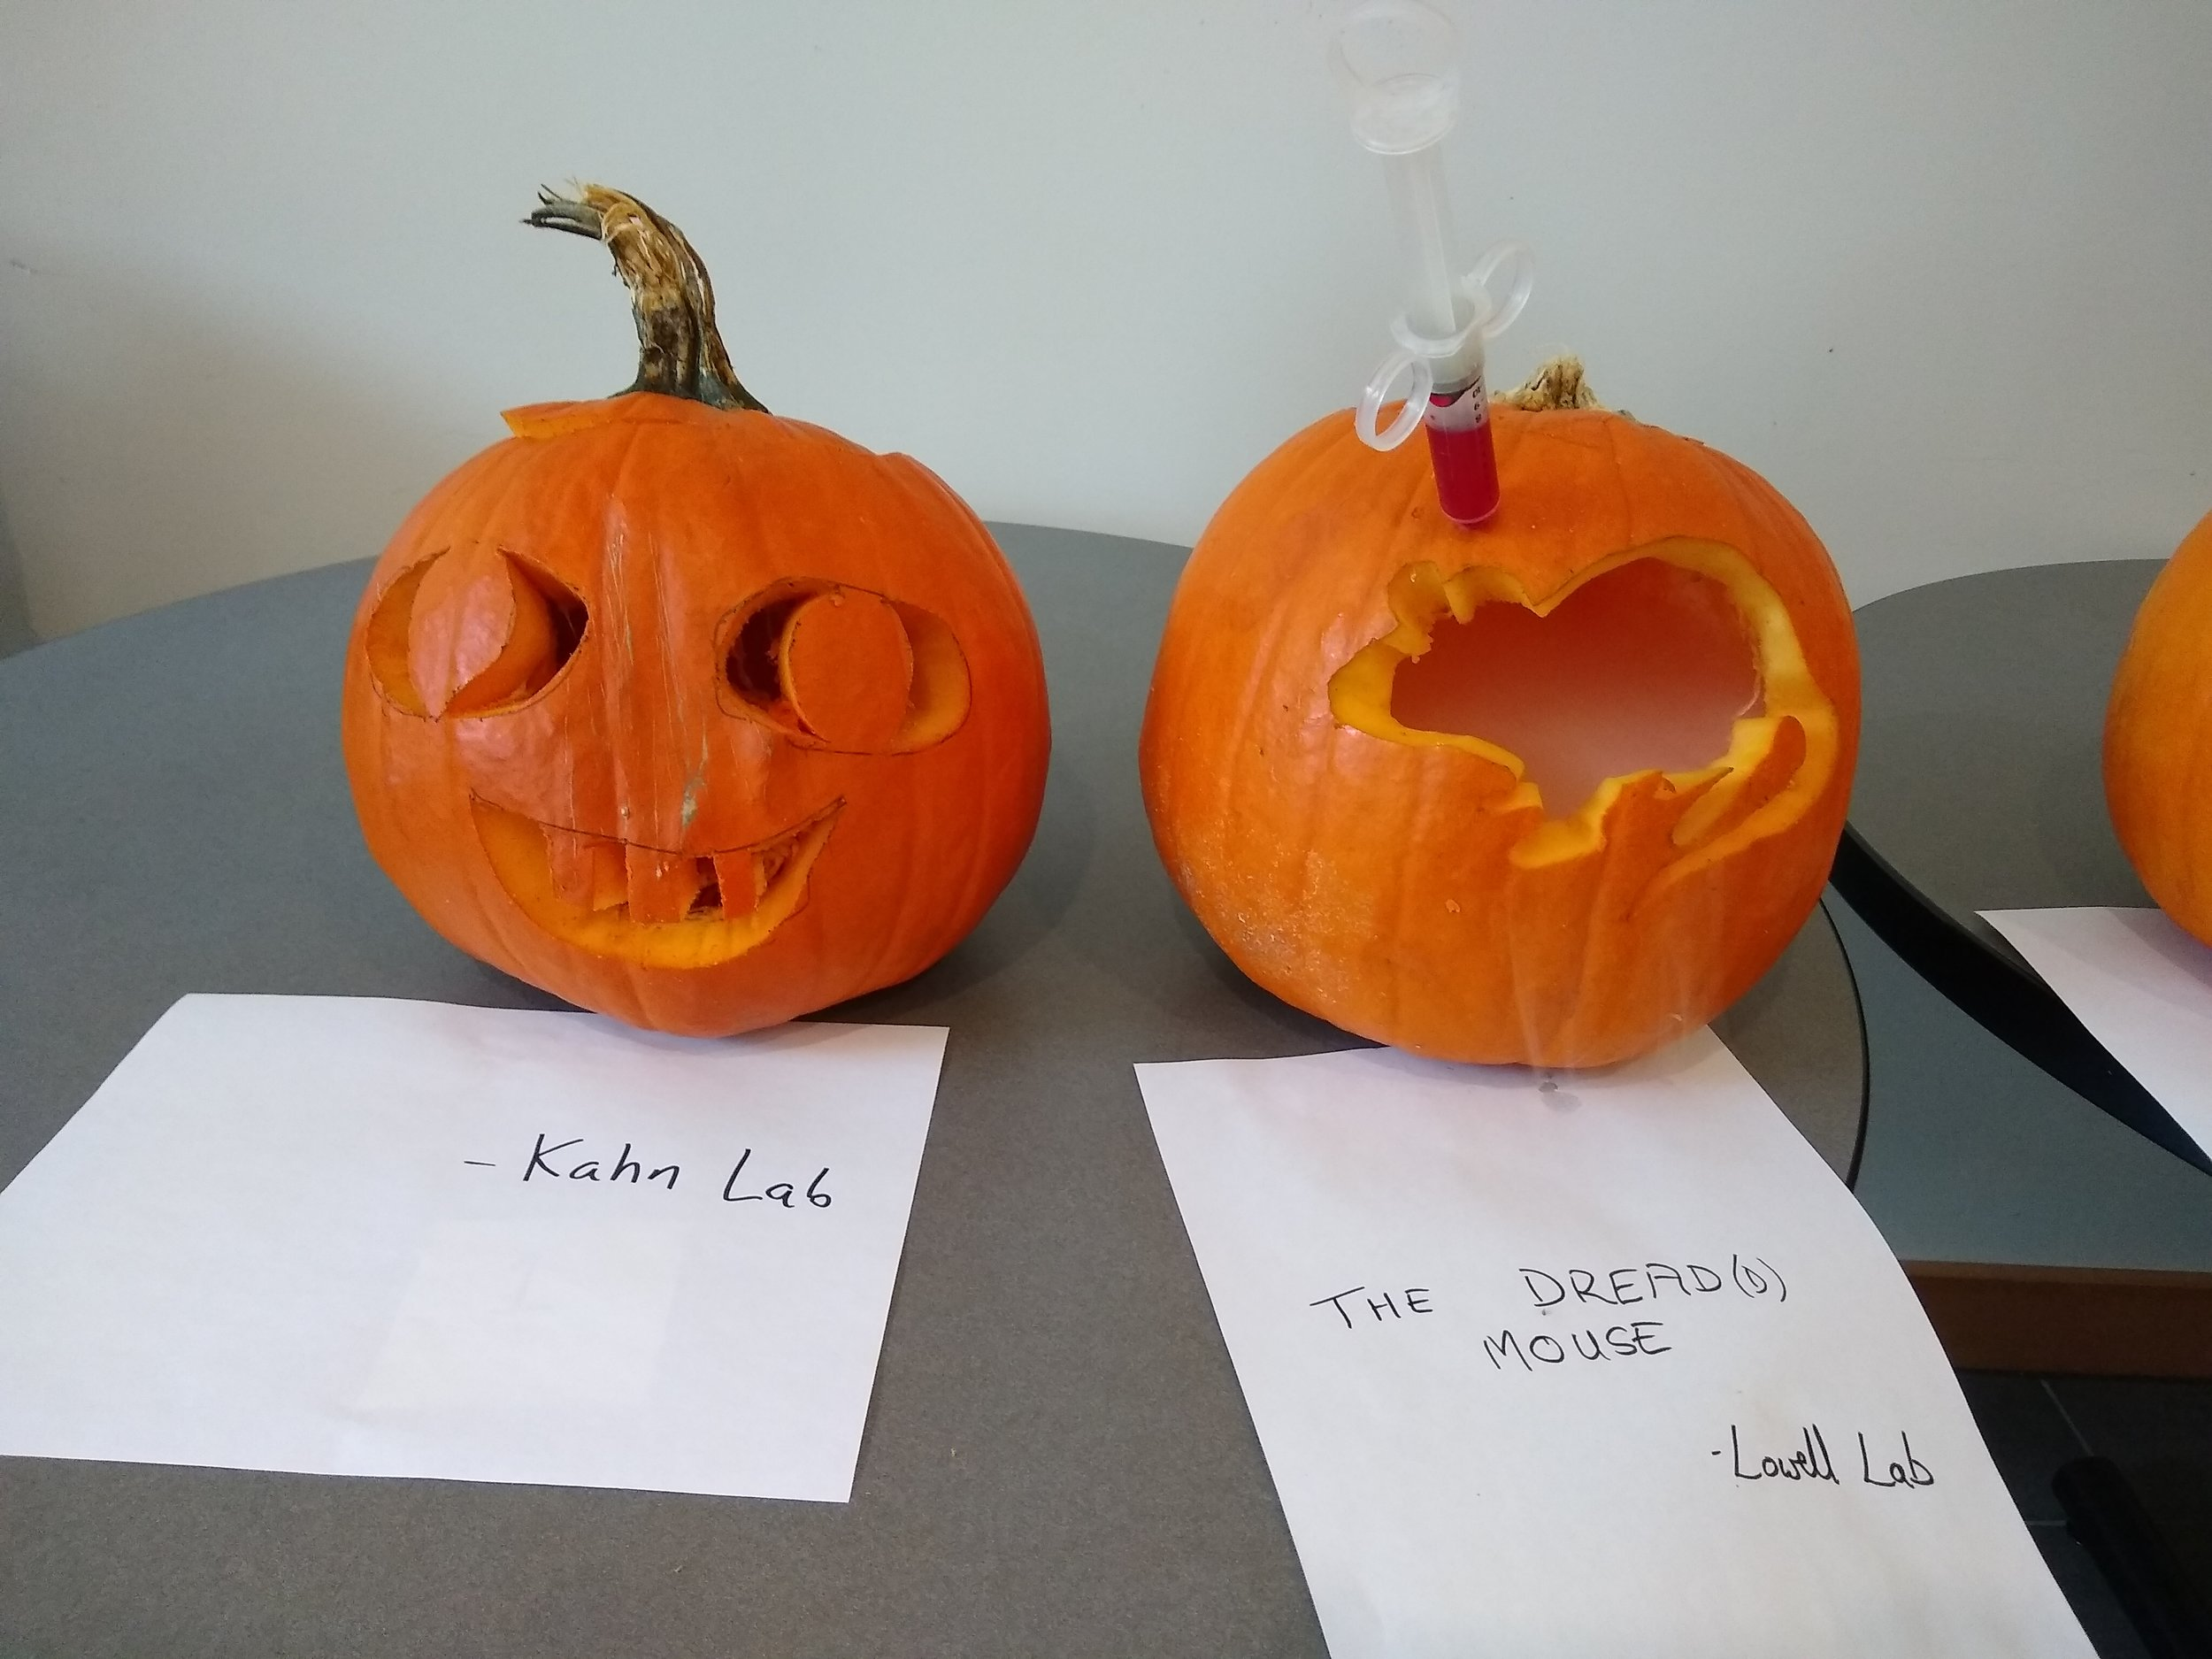 Well actually the DREADD mouse pumpkin won first place. Congrats to the Lowell lab team!